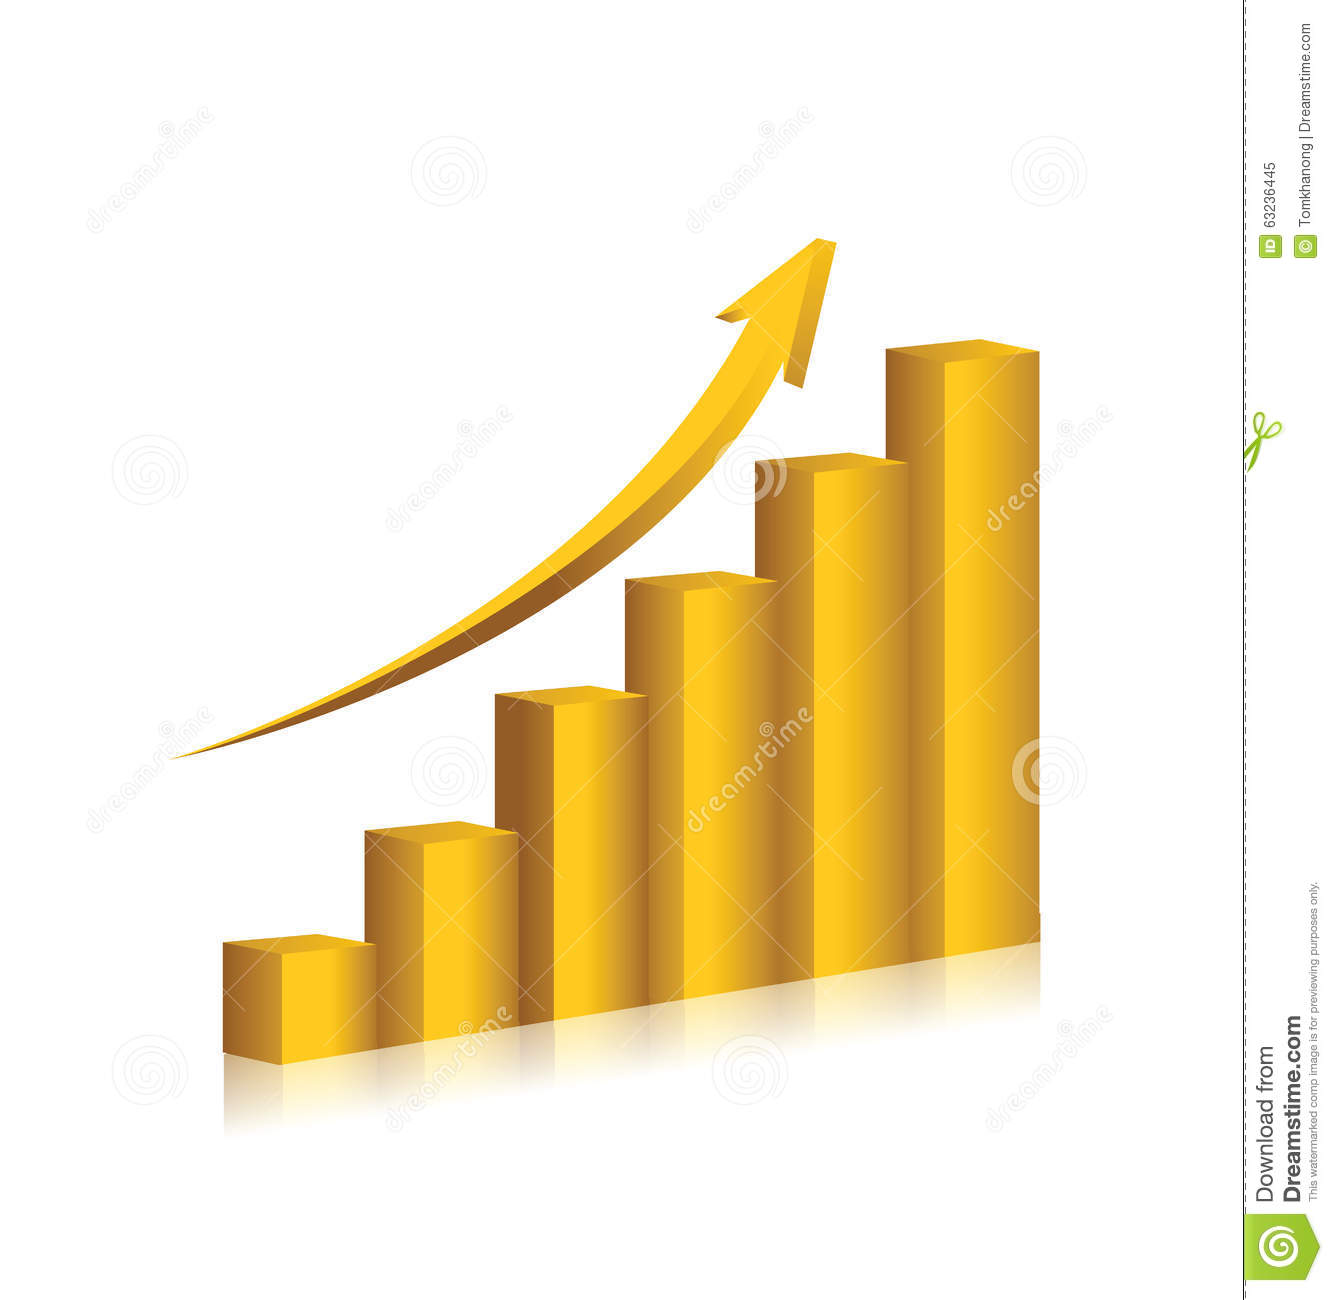 Business chart gold color vector design stock vector business chart gold color vector design nvjuhfo Image collections